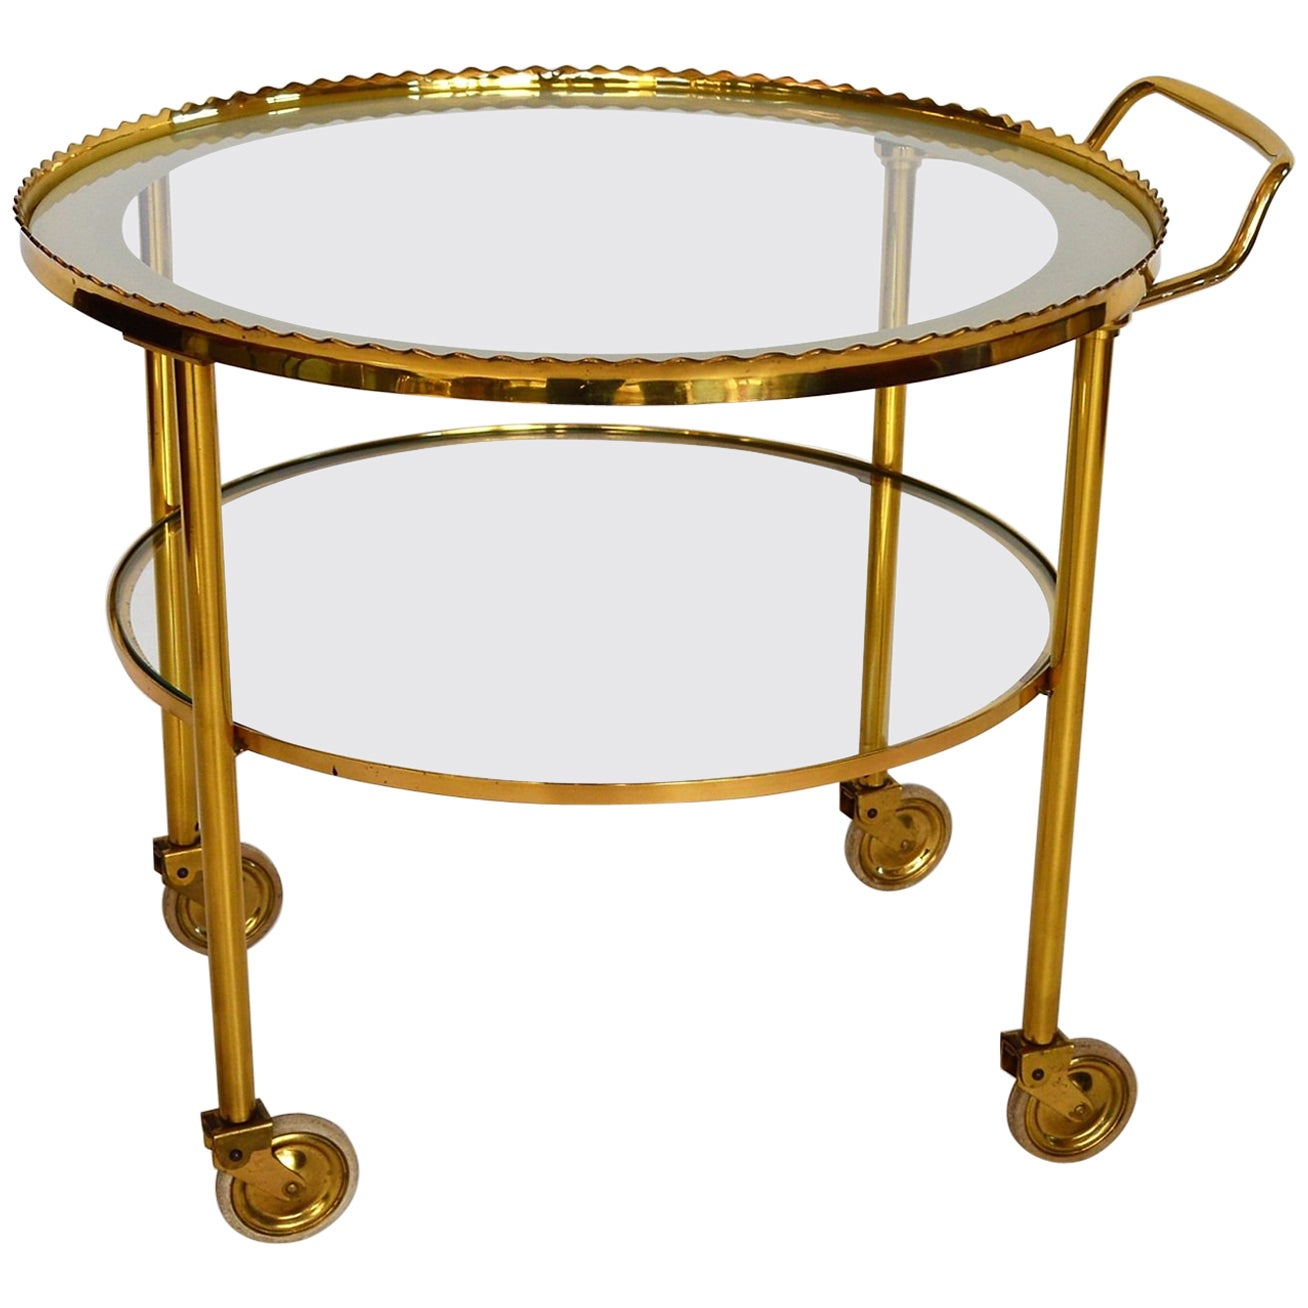 Midcentury Brass Bar Cart or Trolley with Crystal Glass Inserts, 1970s